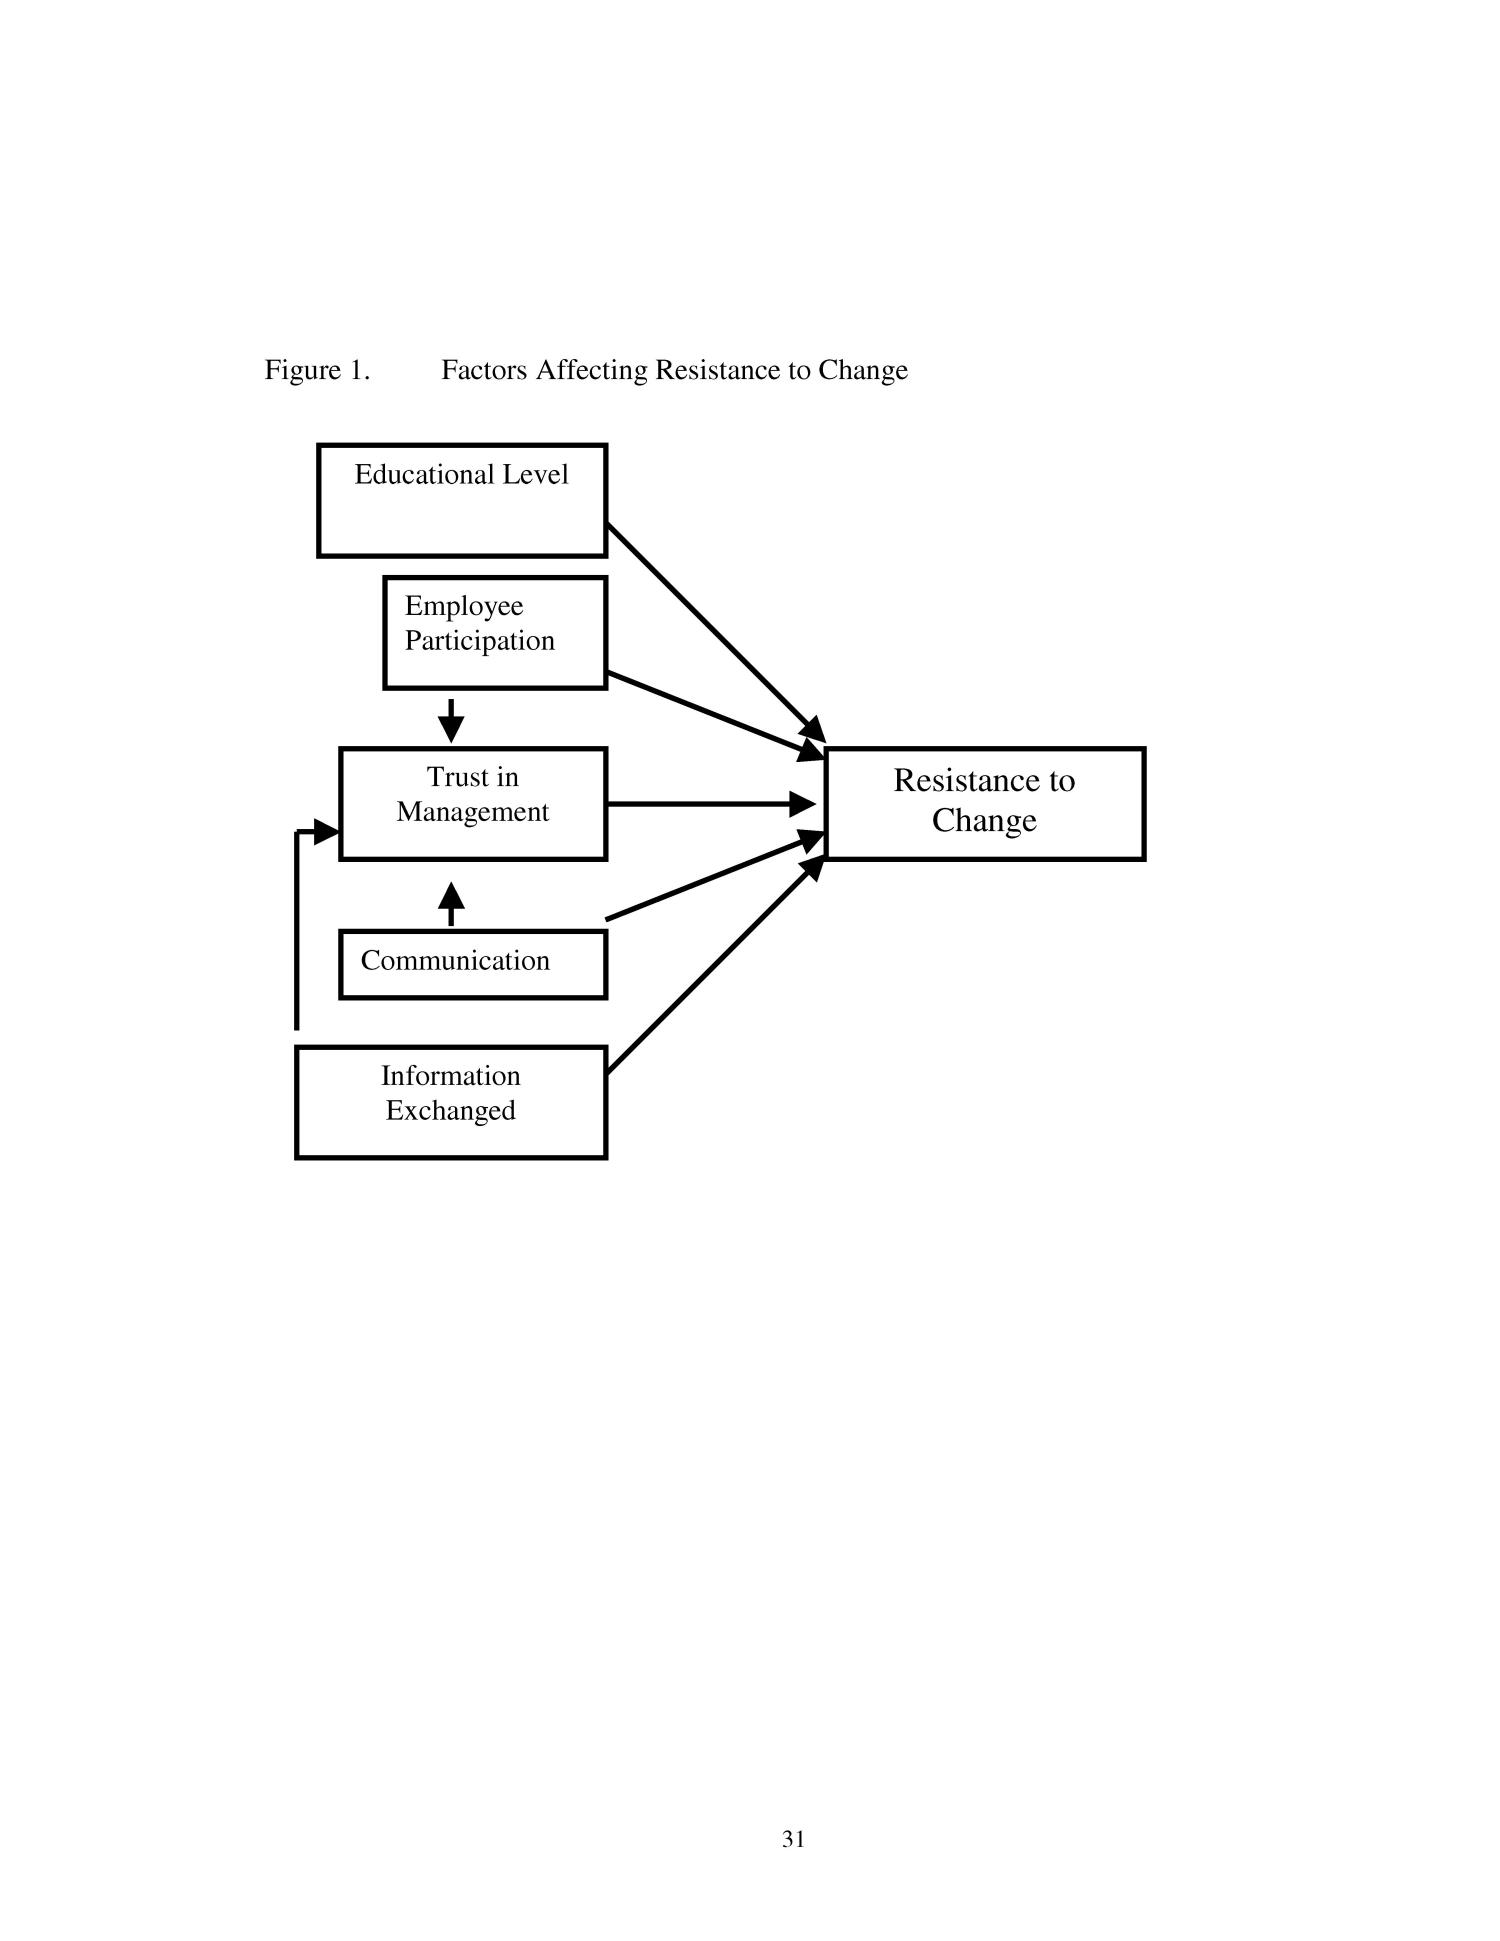 Factors Affecting Resistance to Change: A Case Study of